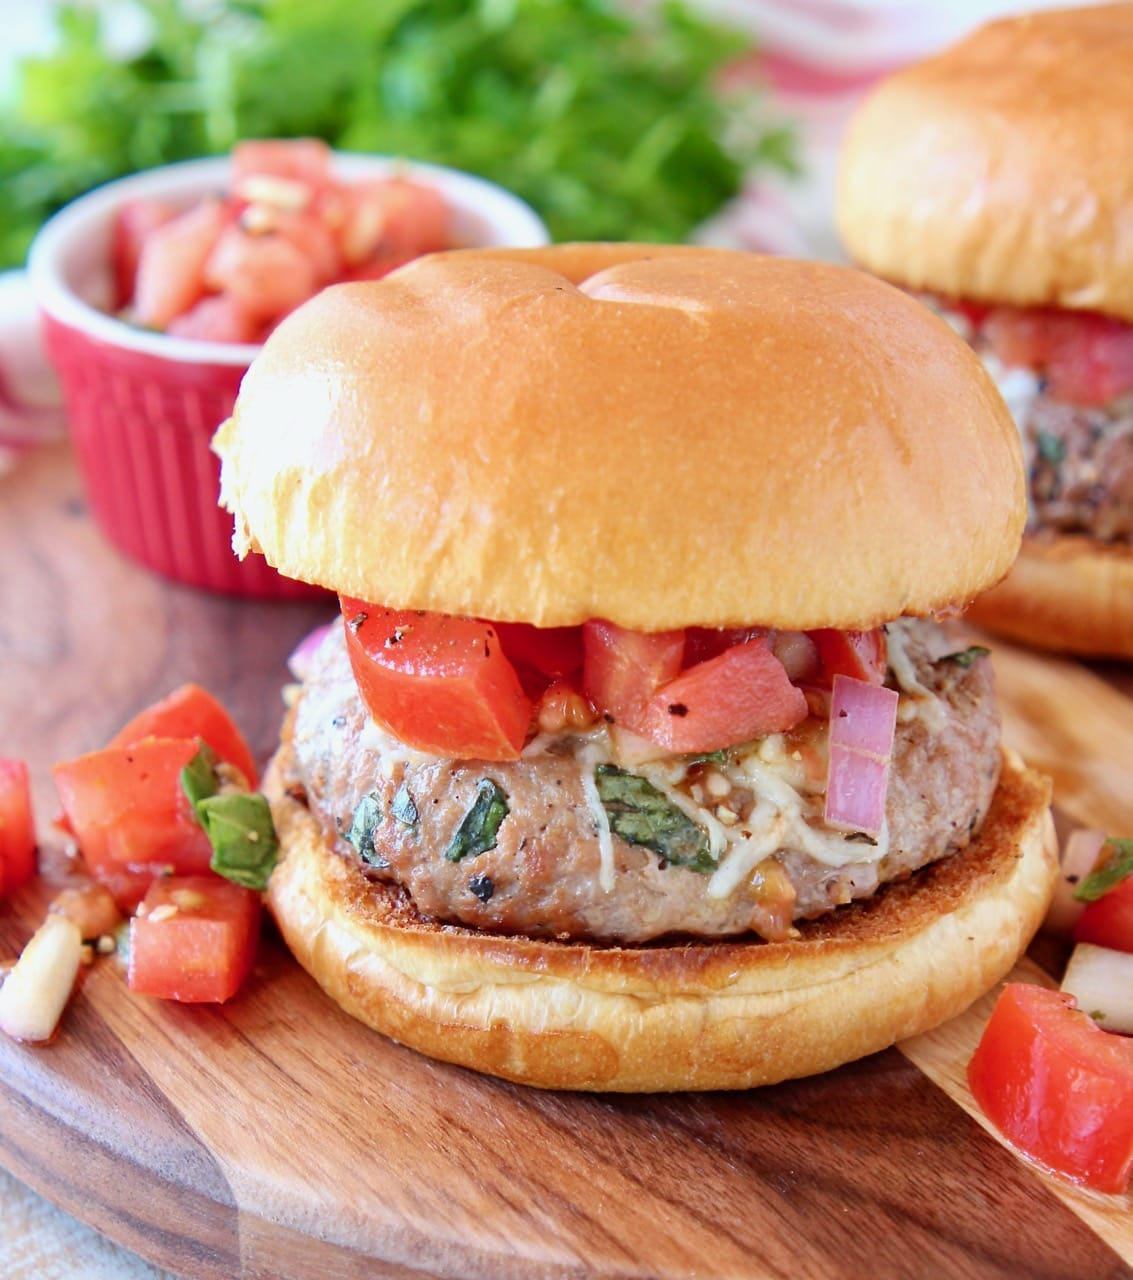 Turkey burger on bun topped with diced tomatoes and onions on wood cutting board